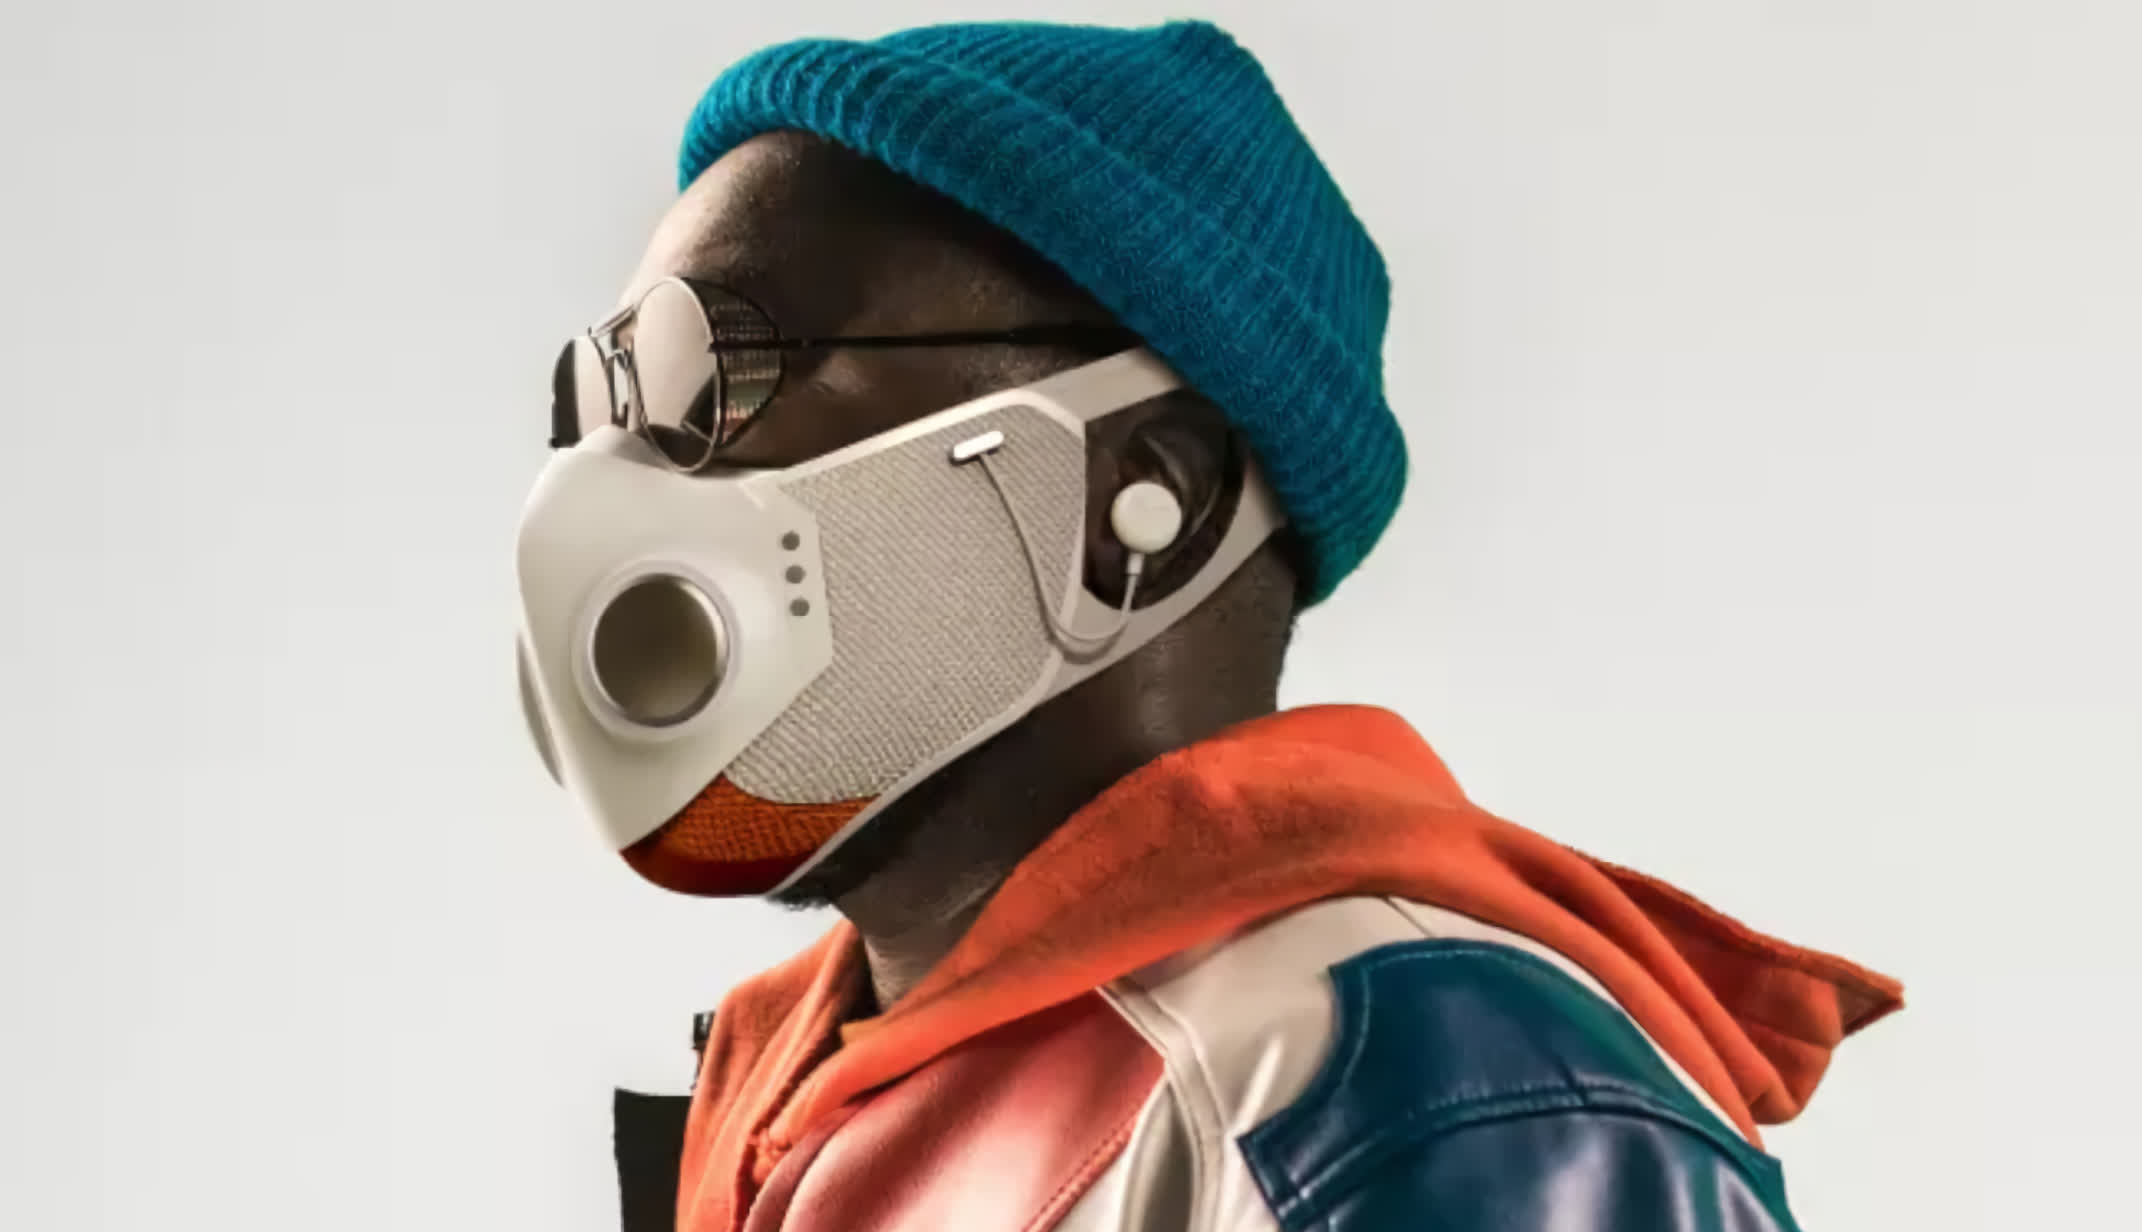 Will.i.am reveals his 9 face mask featuring dual fans, ANC headphones, Bluetooth, and more